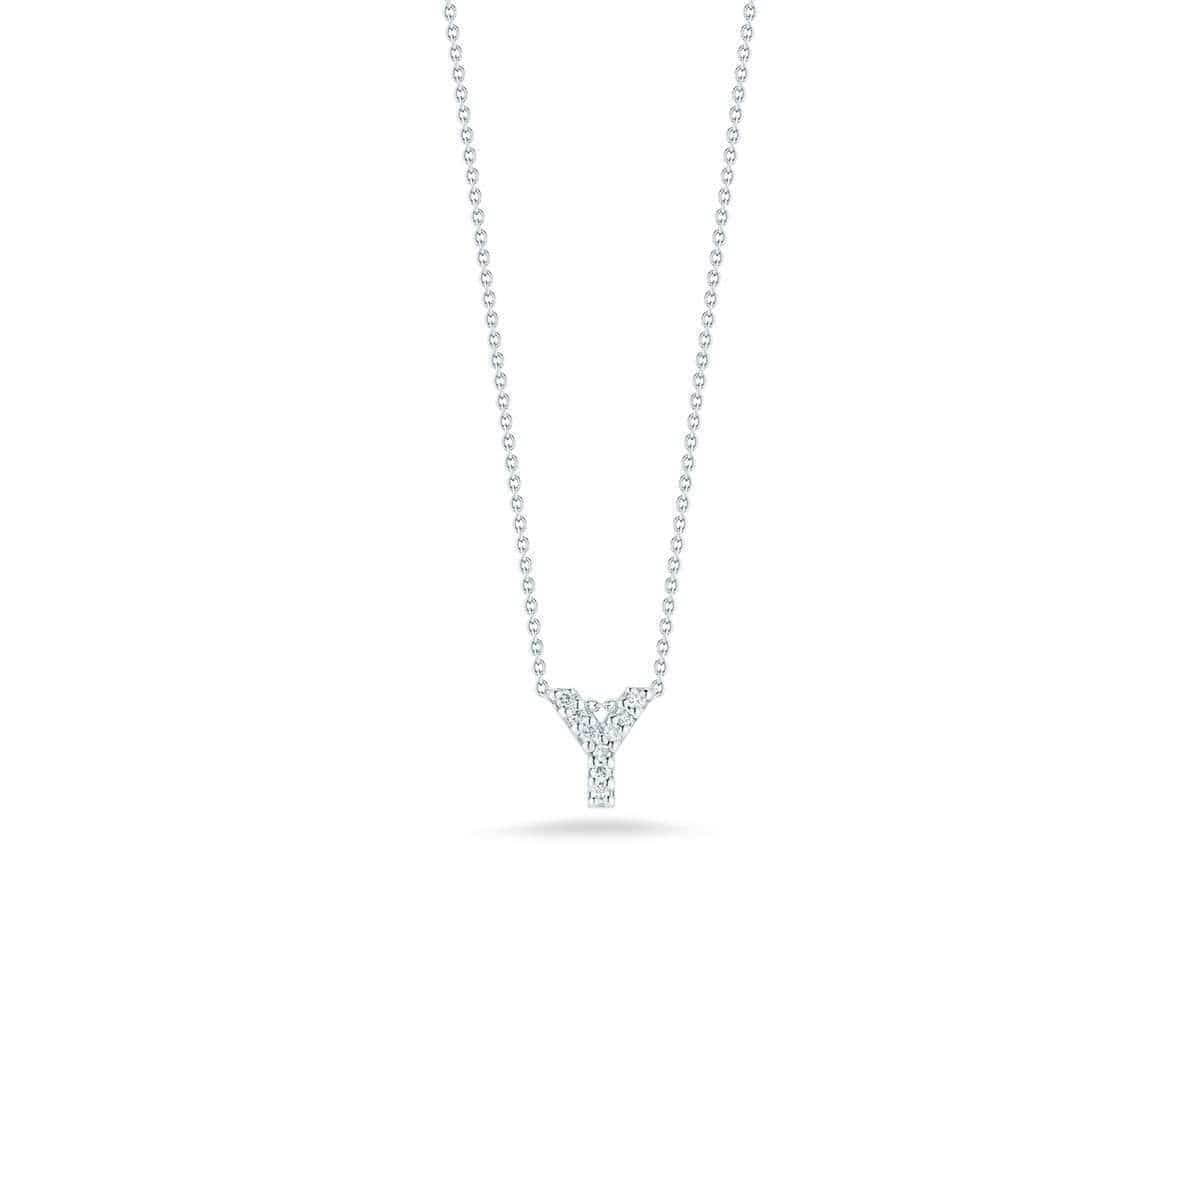 18k White Gold & Diamond Love Letter Y Necklace - 001634AWCHXY-Roberto Coin-Renee Taylor Gallery